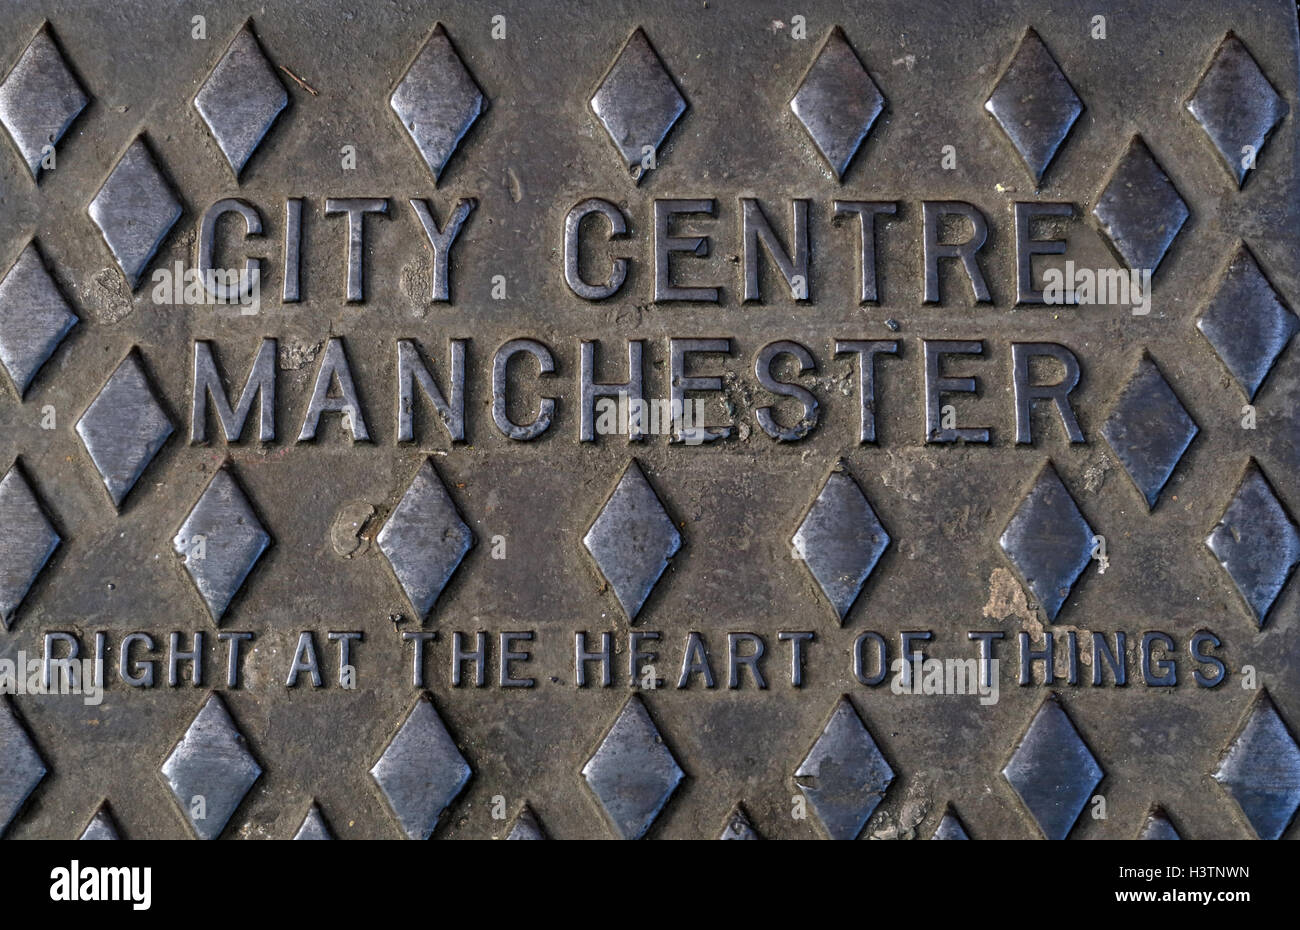 City Centre Manchester Grid,Right at the heart of things, England UK - Stock Image